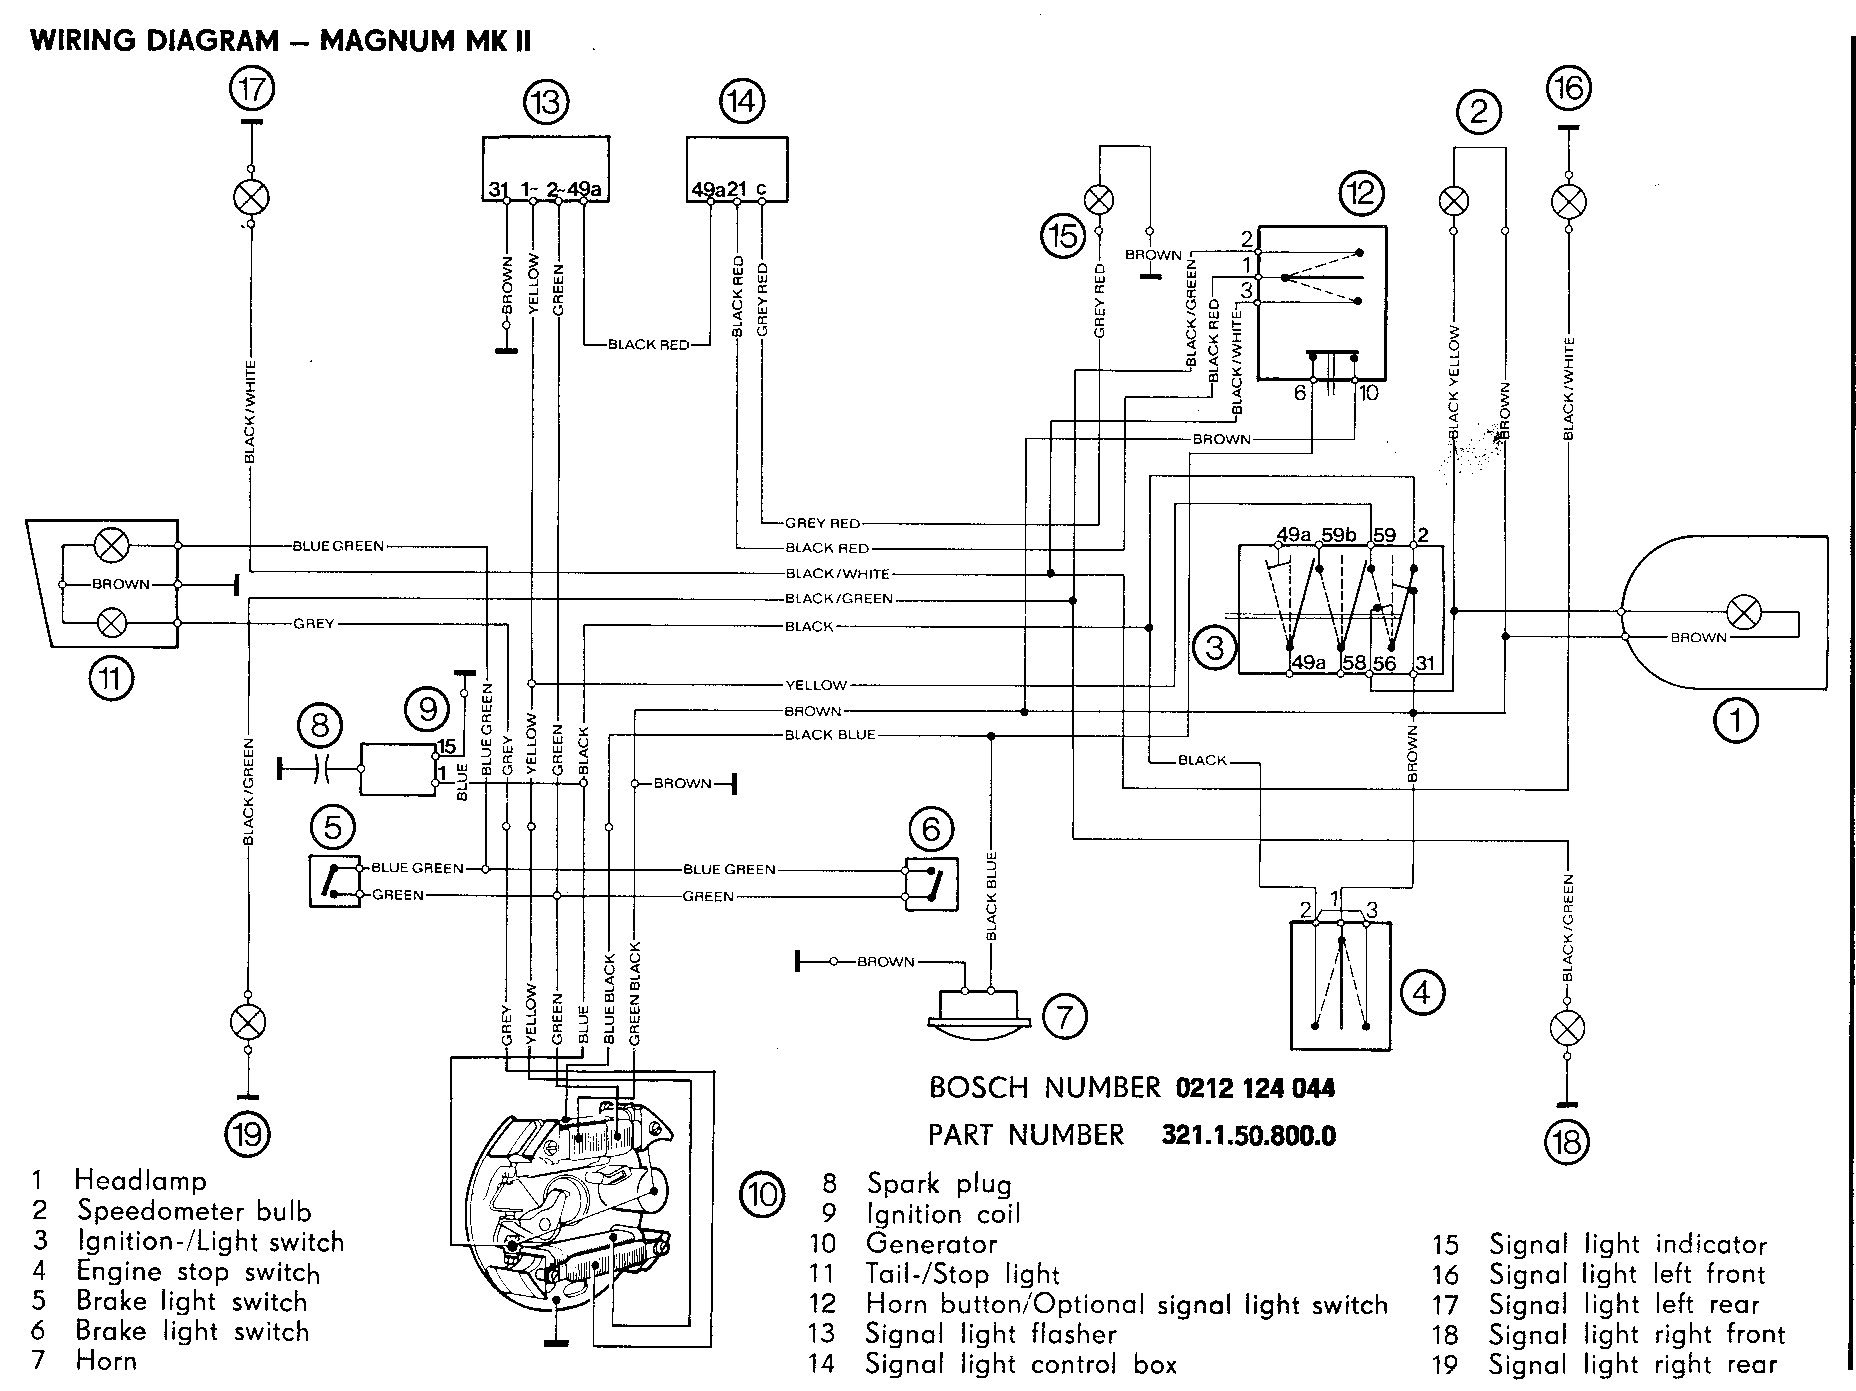 DIAGRAM] Trailer Brake Wiring Diagram 97 Dodge Truck FULL Version HD  Quality Dodge Truck - PDFDRBKRBPMZCW.CAFESECRET.FRCafesecret